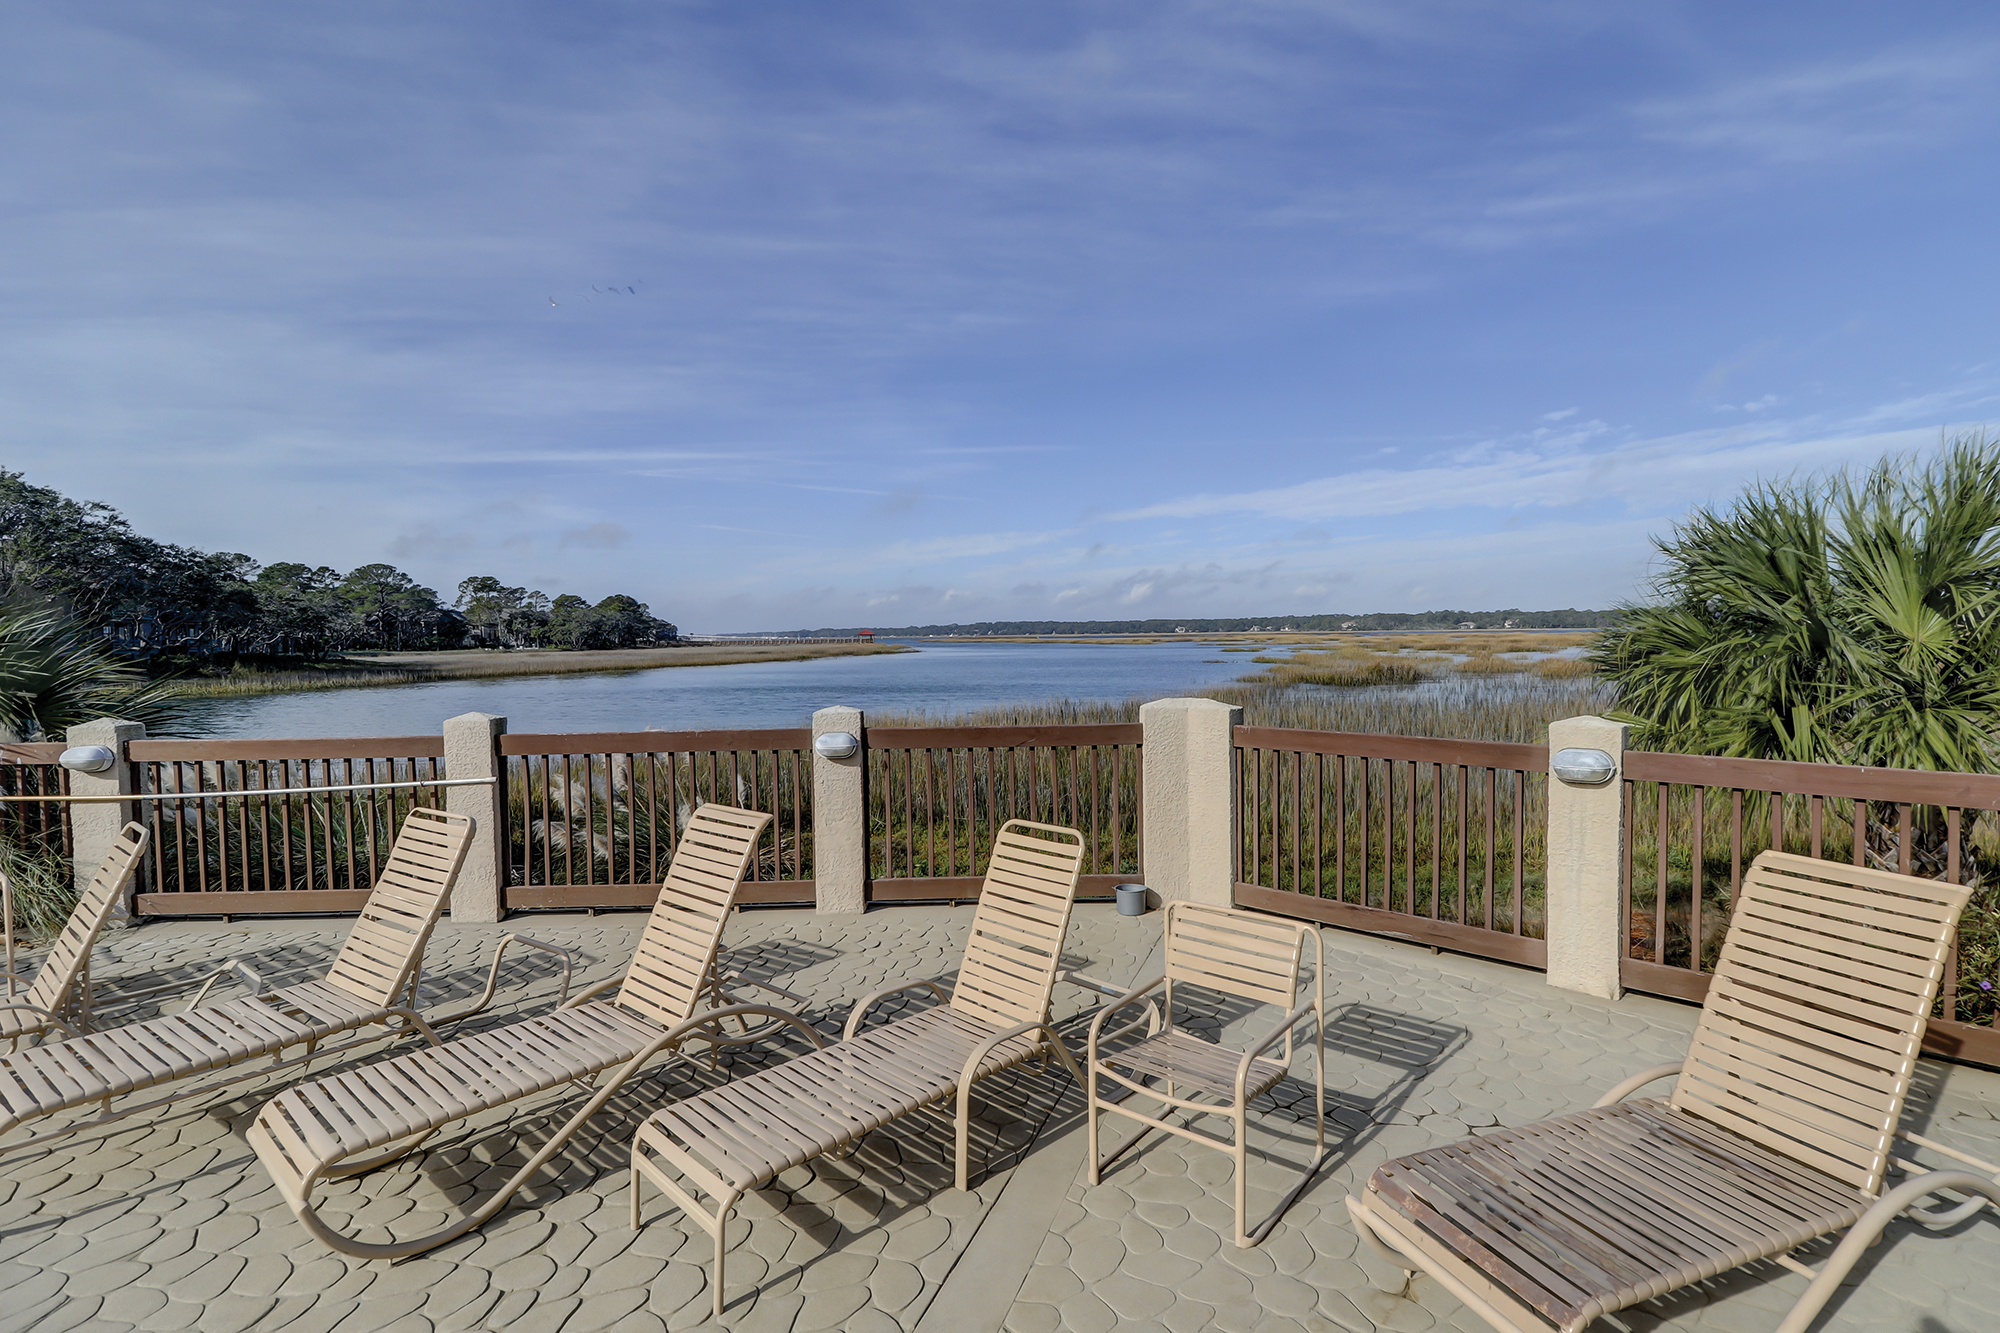 Newport Villas Offer Views of Broad Creek. Palmetto Dunes Hilton Head